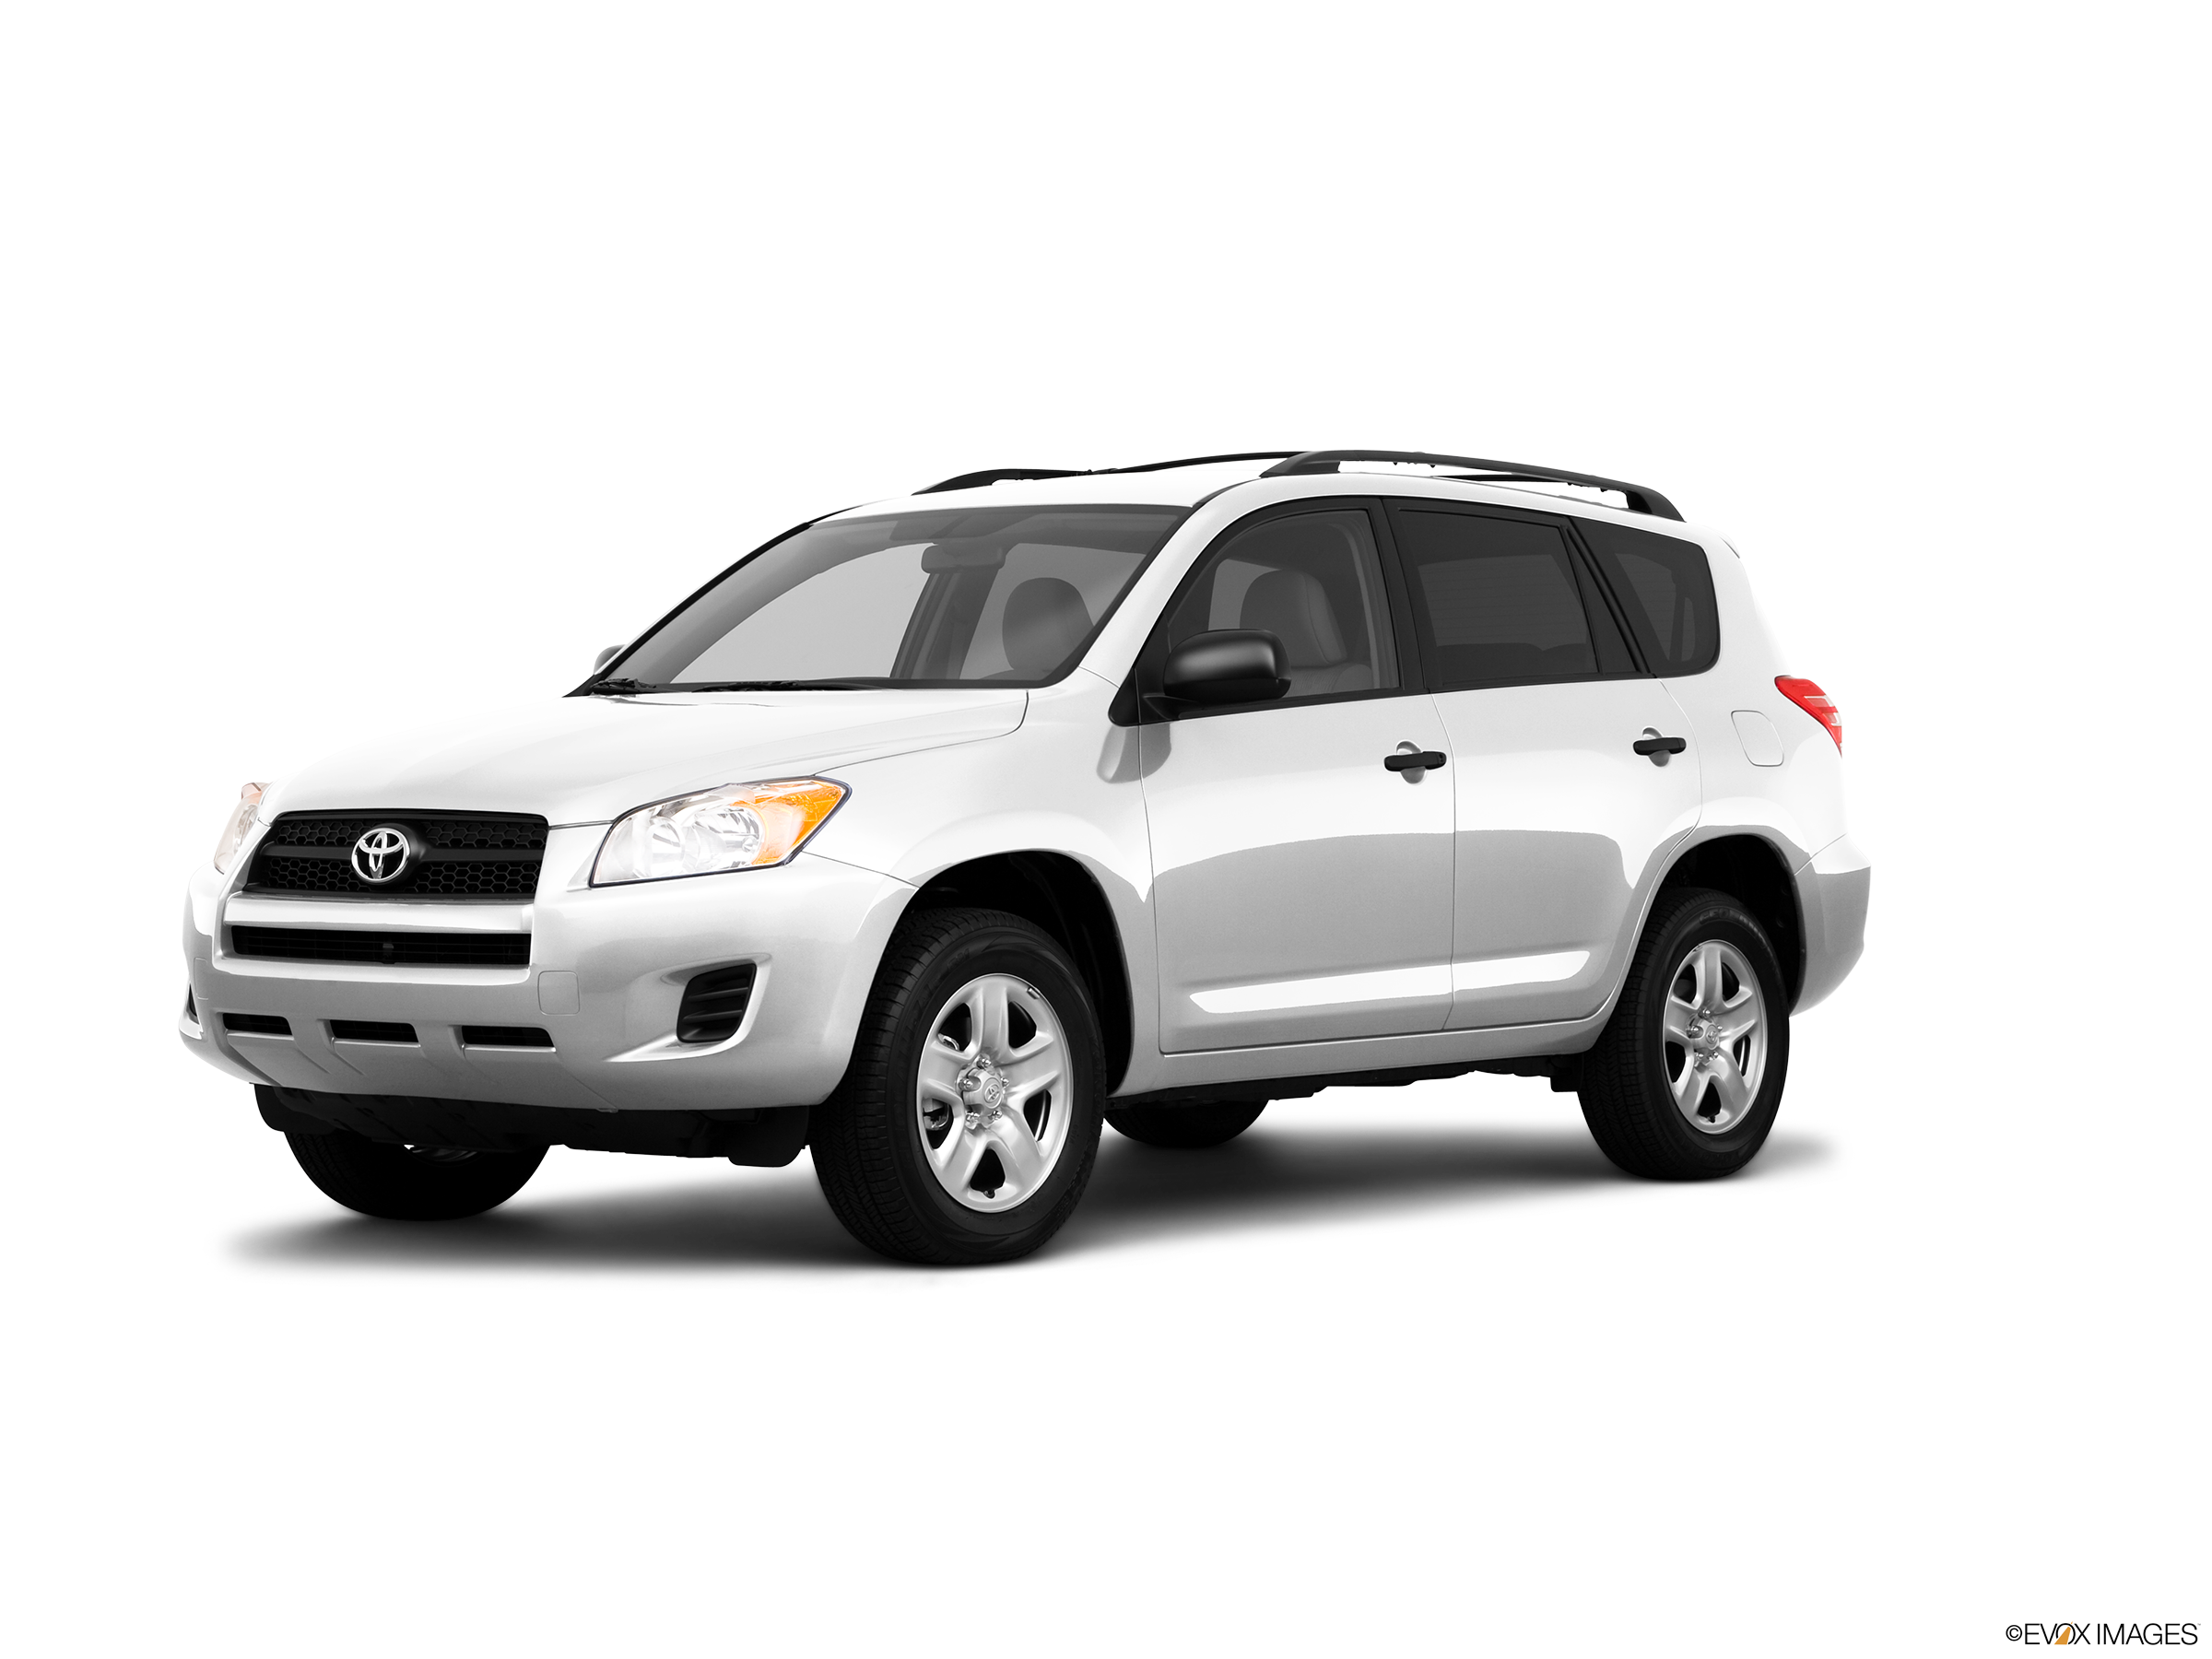 2010 Toyota Rav4 Values Cars For Sale Kelley Blue Book